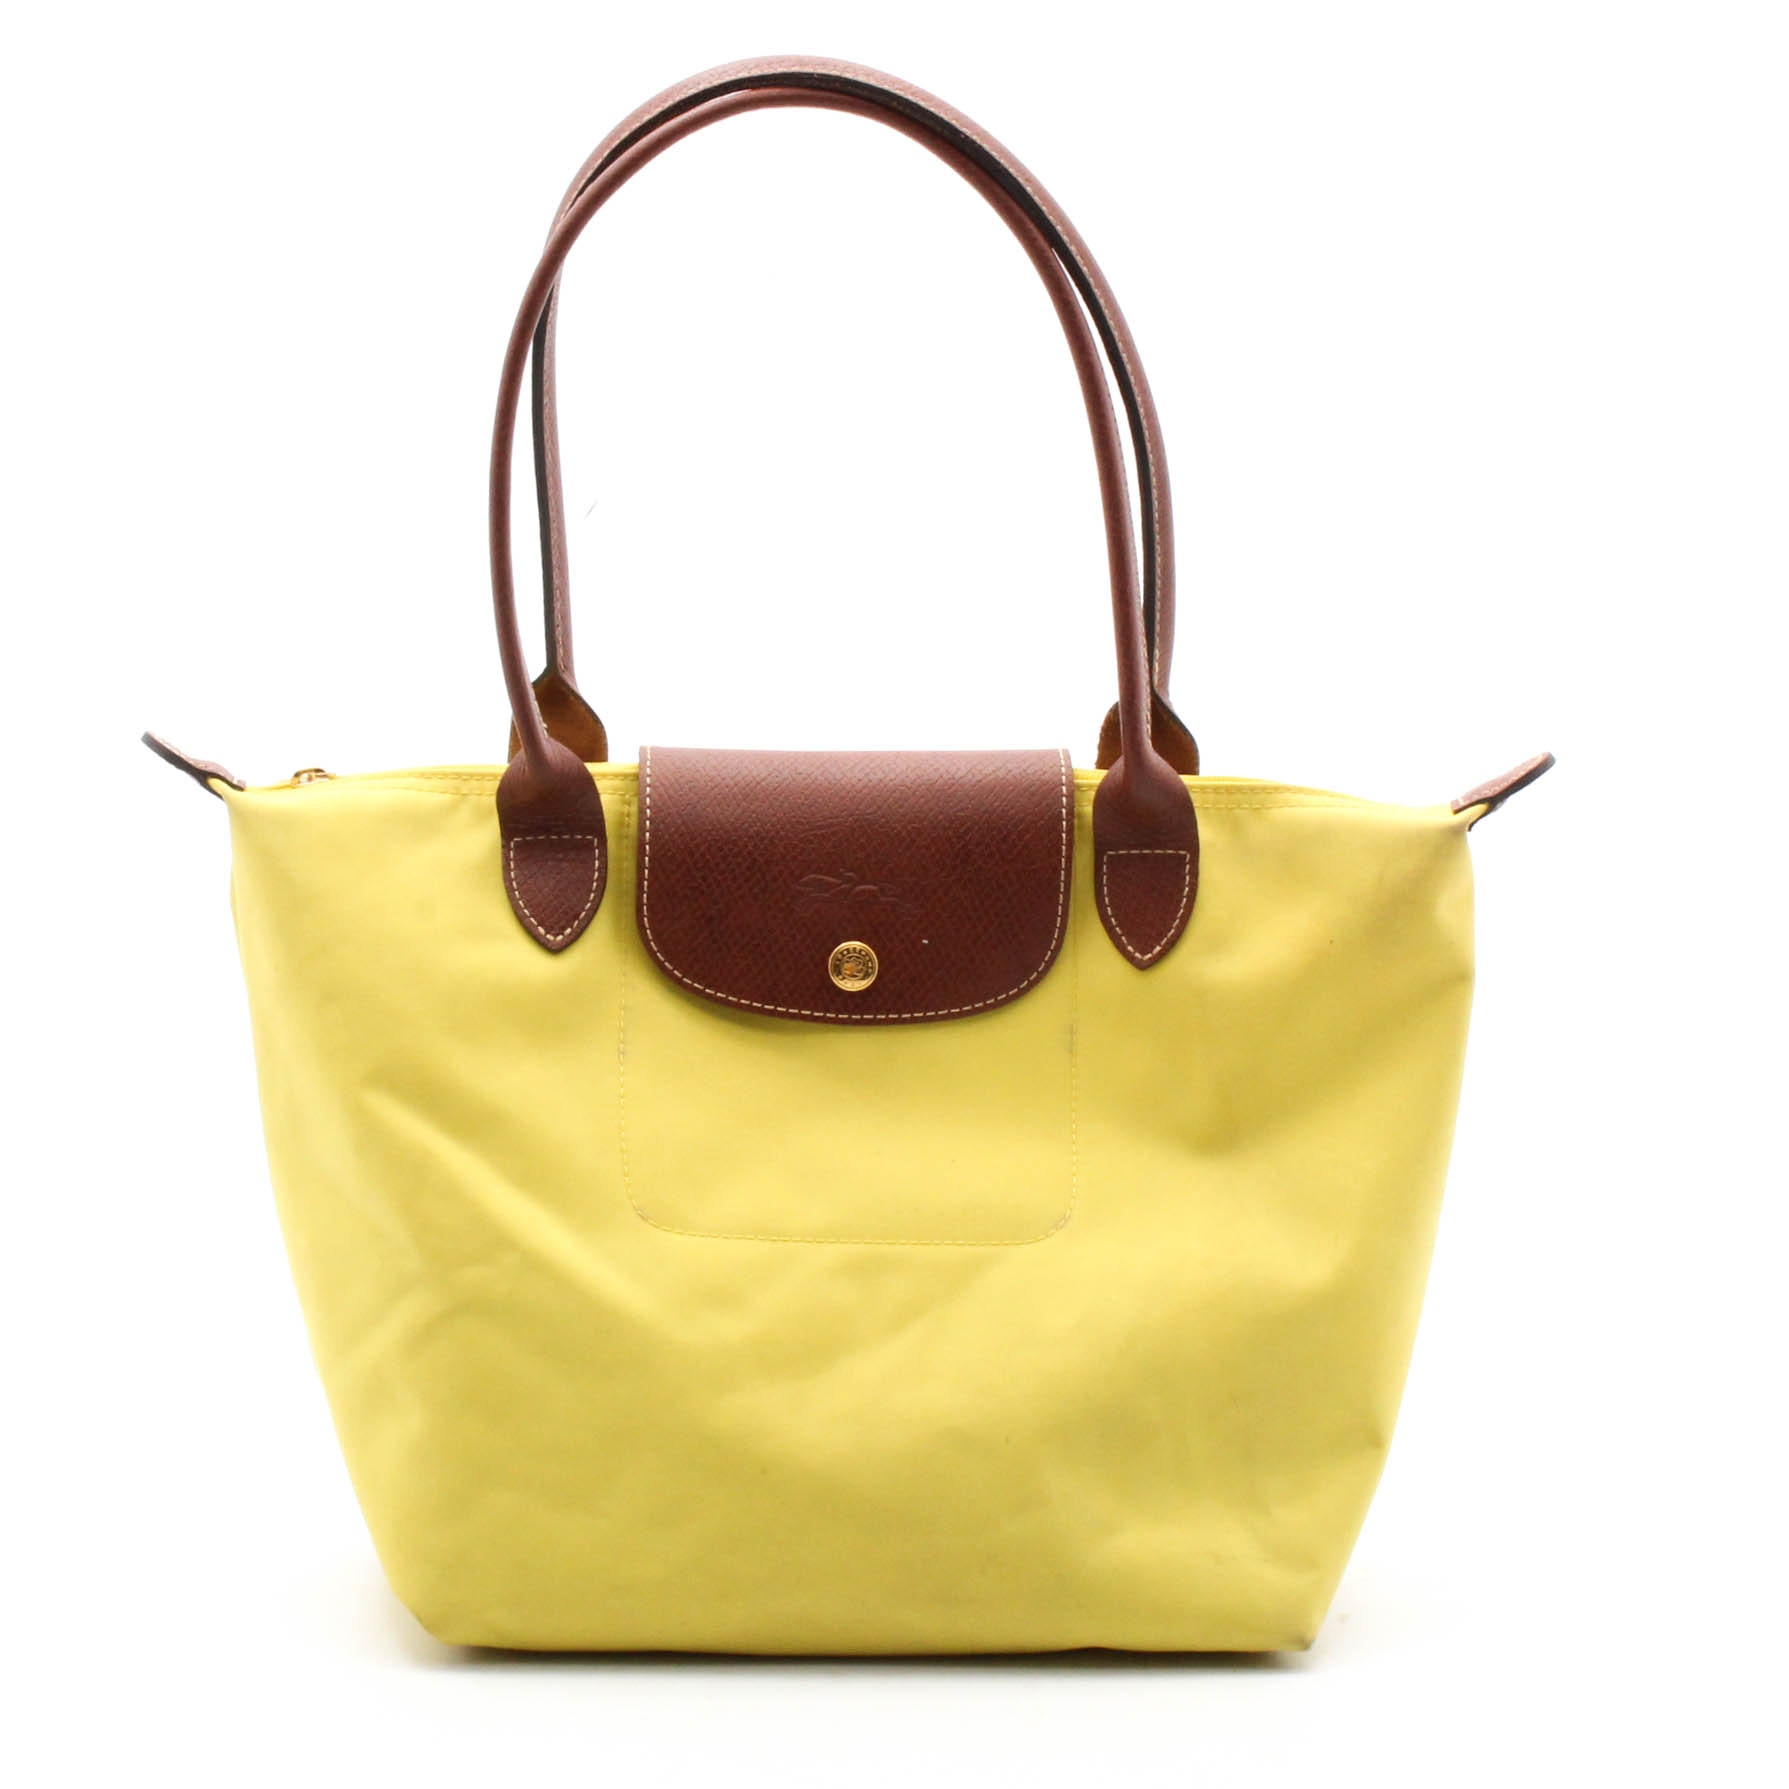 Longchamp Paris Le Pliage Yellow Nylon Tote Trimmed in Brown Leather